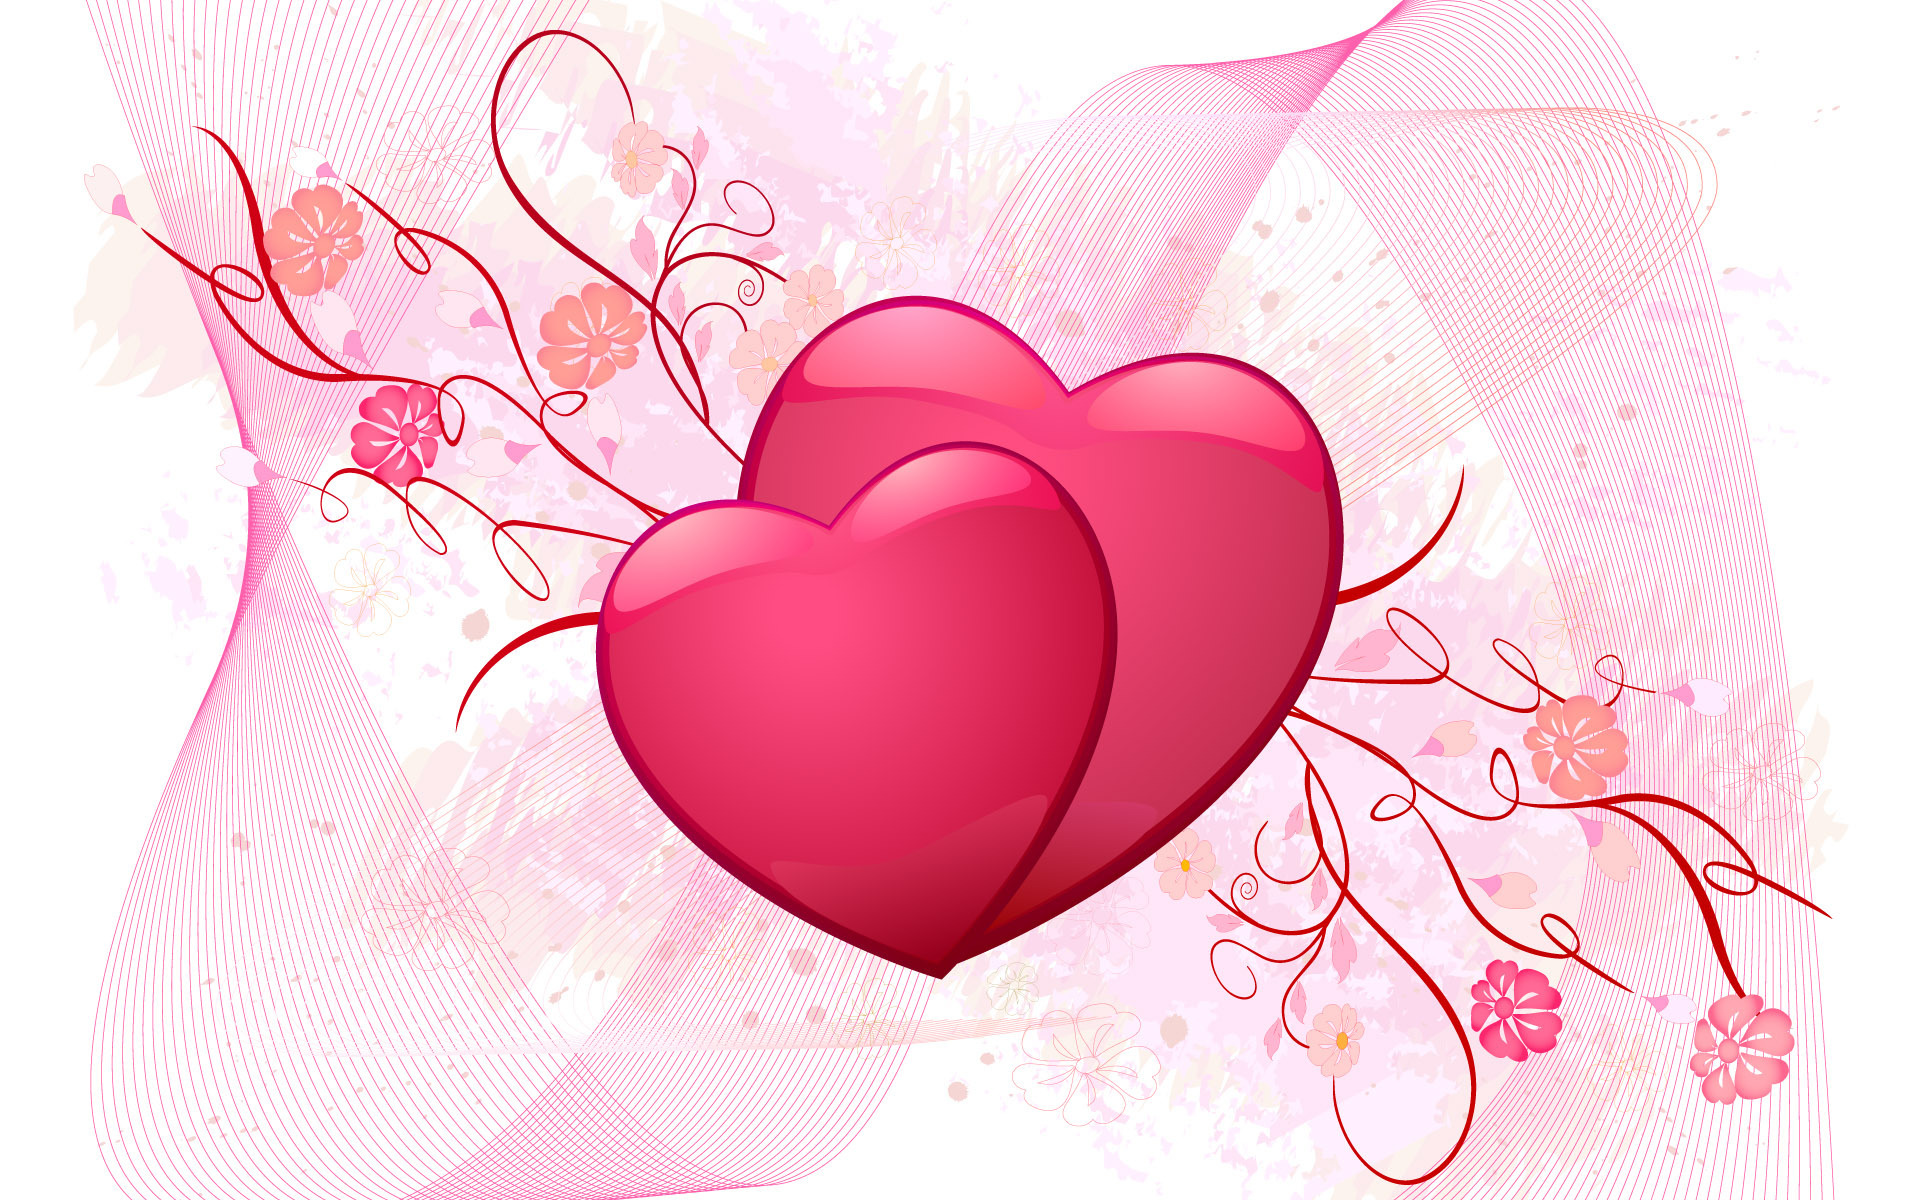 love-wallpaper-love-4187609-1920-1200.jpg